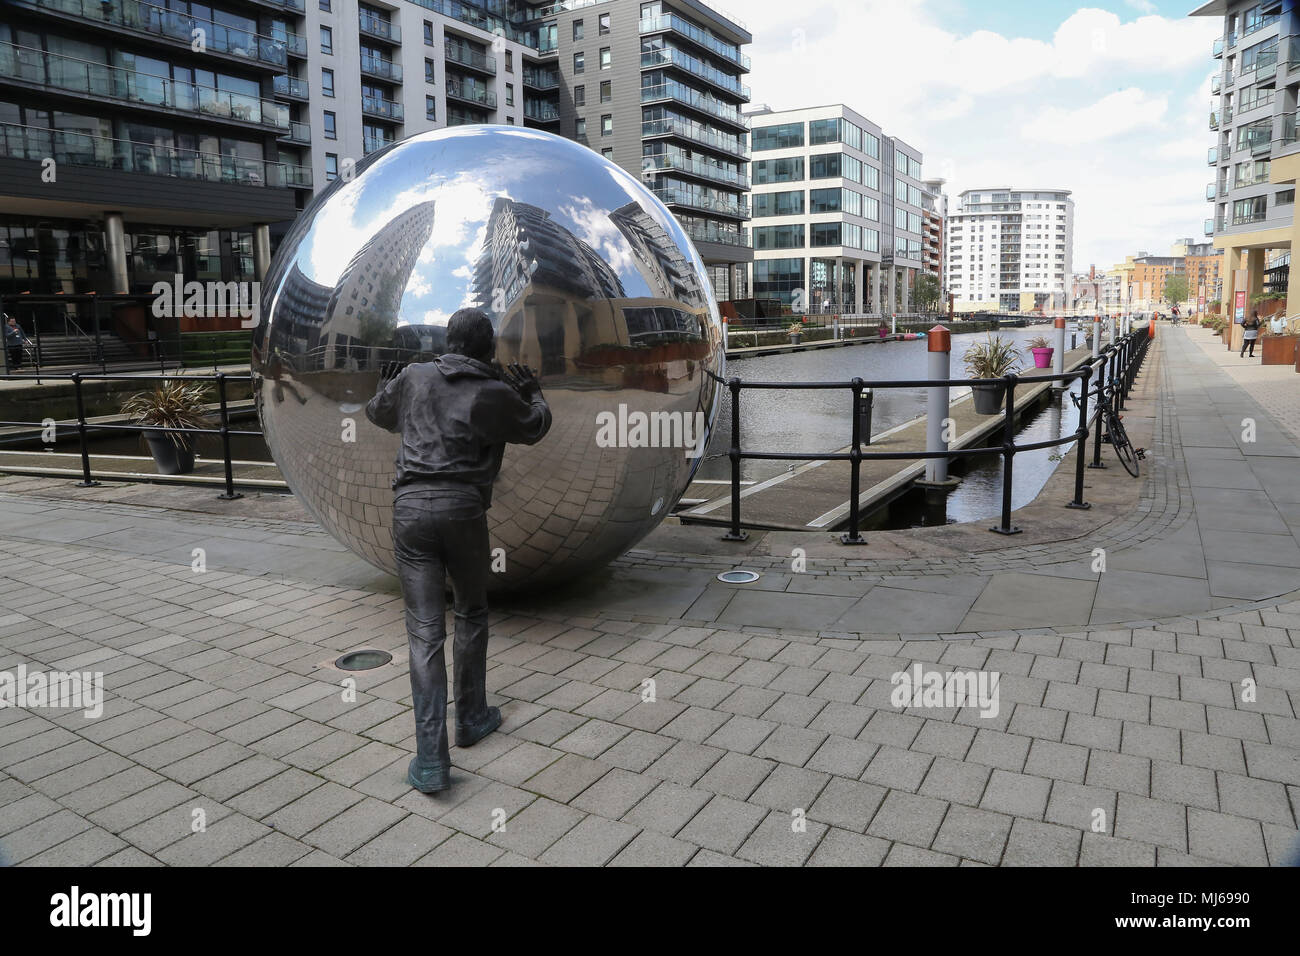 A Reflective Approach is a two-part sculpture consisting of 2 life-size bronze figures pushing two reflective stainless steel spheres towards a canal. - Stock Image